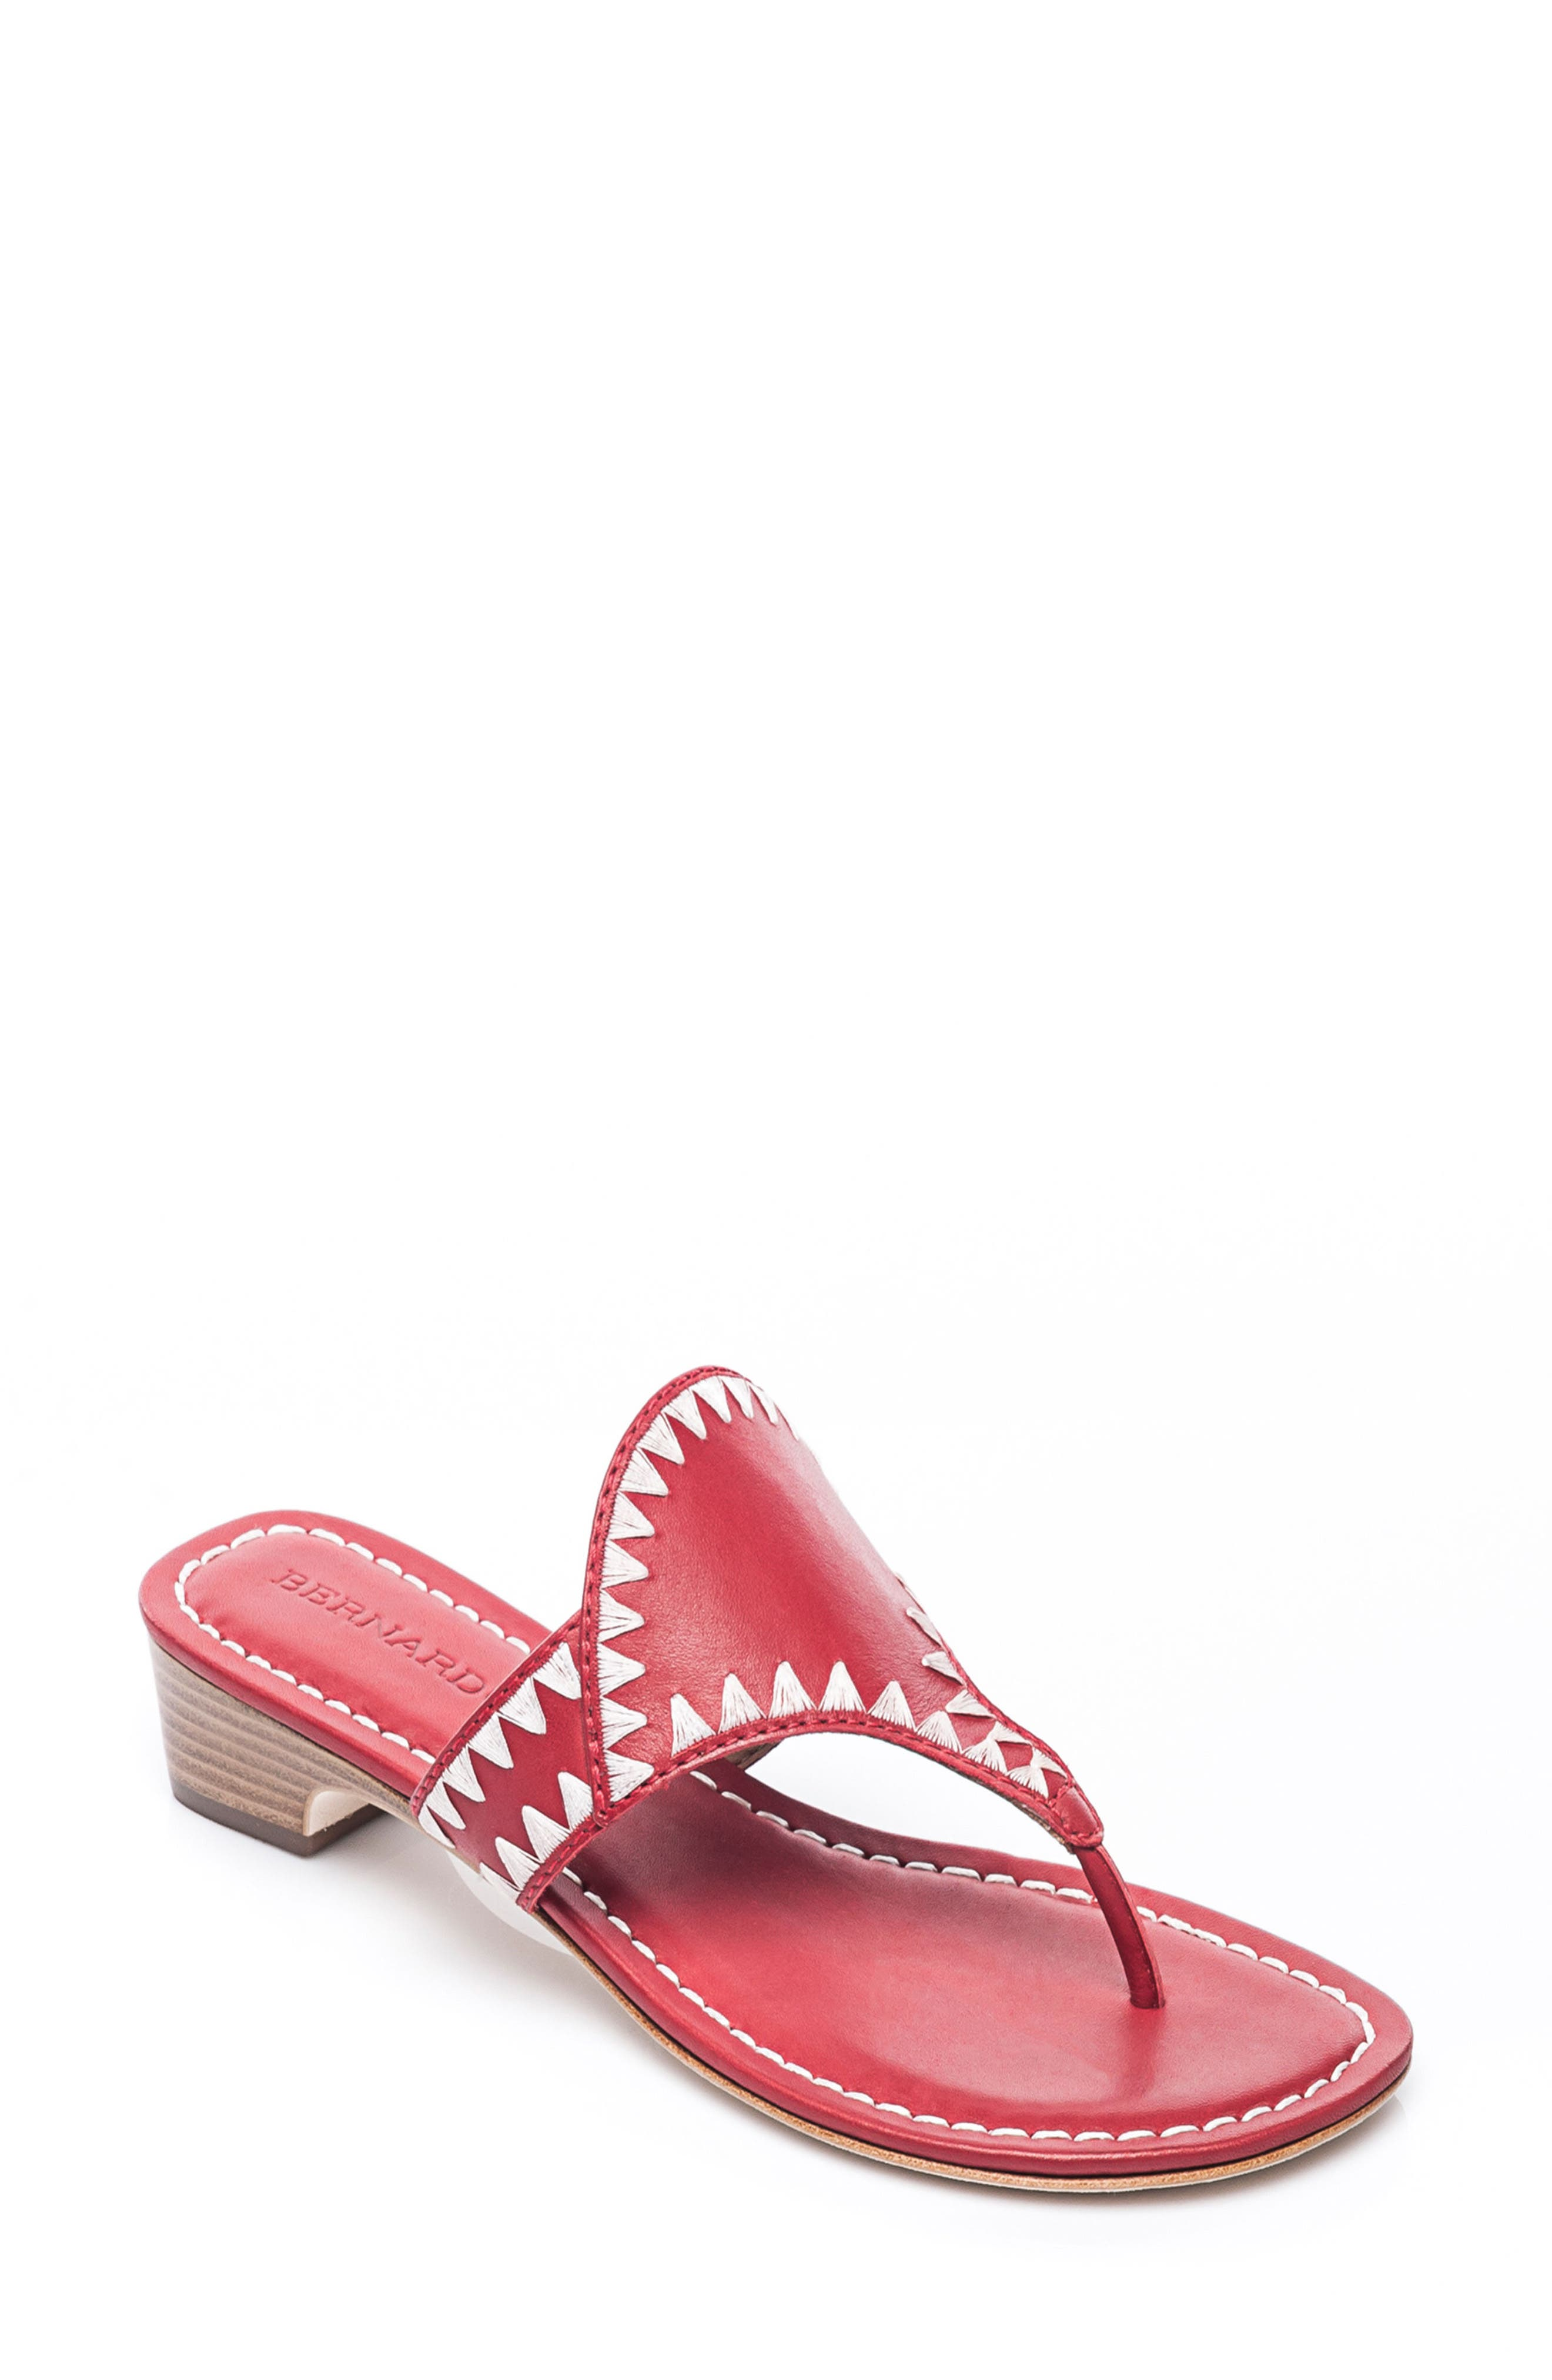 Bernardo Gabi Embroidered Sandal,                             Main thumbnail 1, color,                             Red Leather